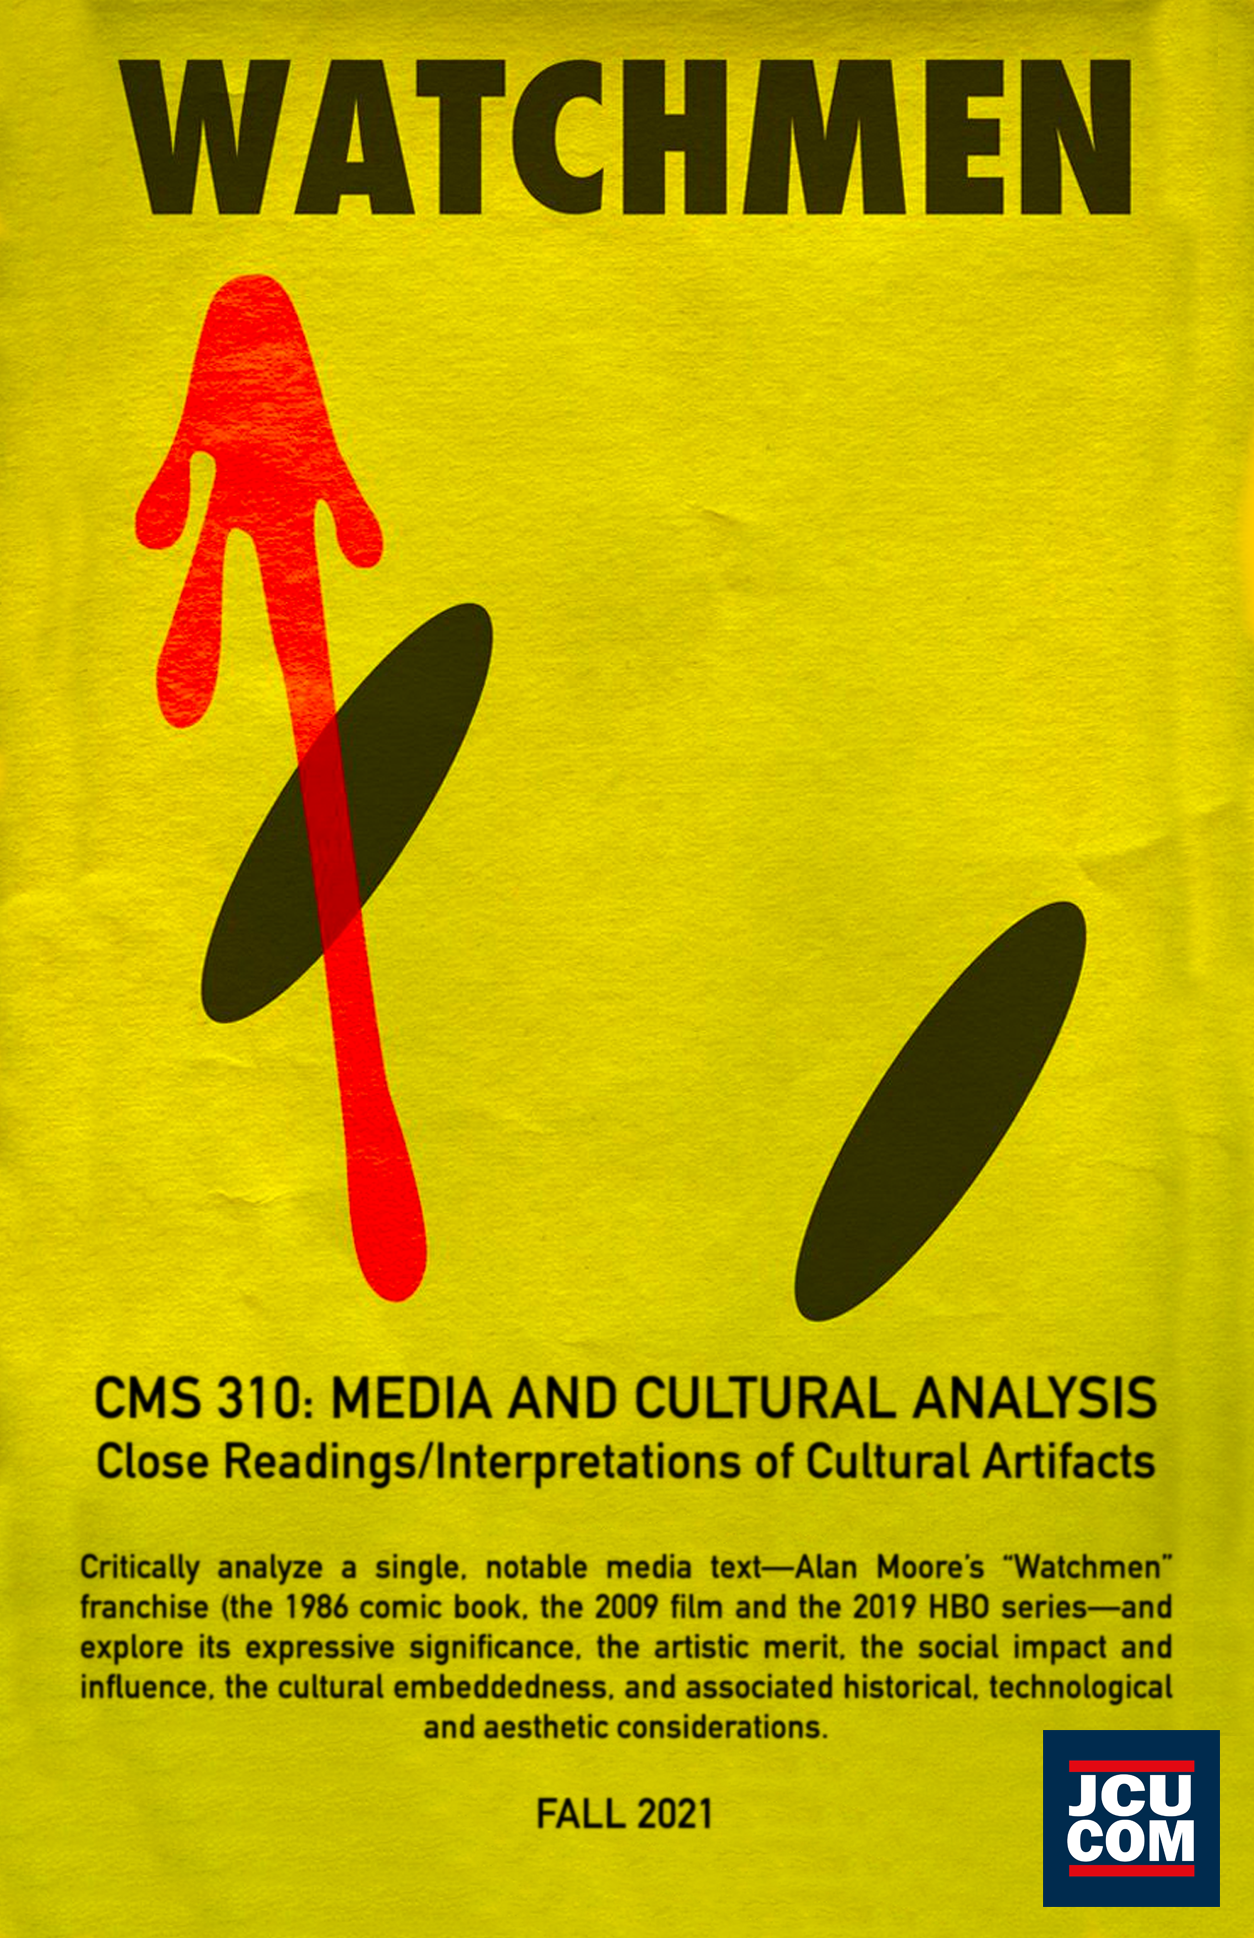 CMS 310 - Media and Cultural Analysis